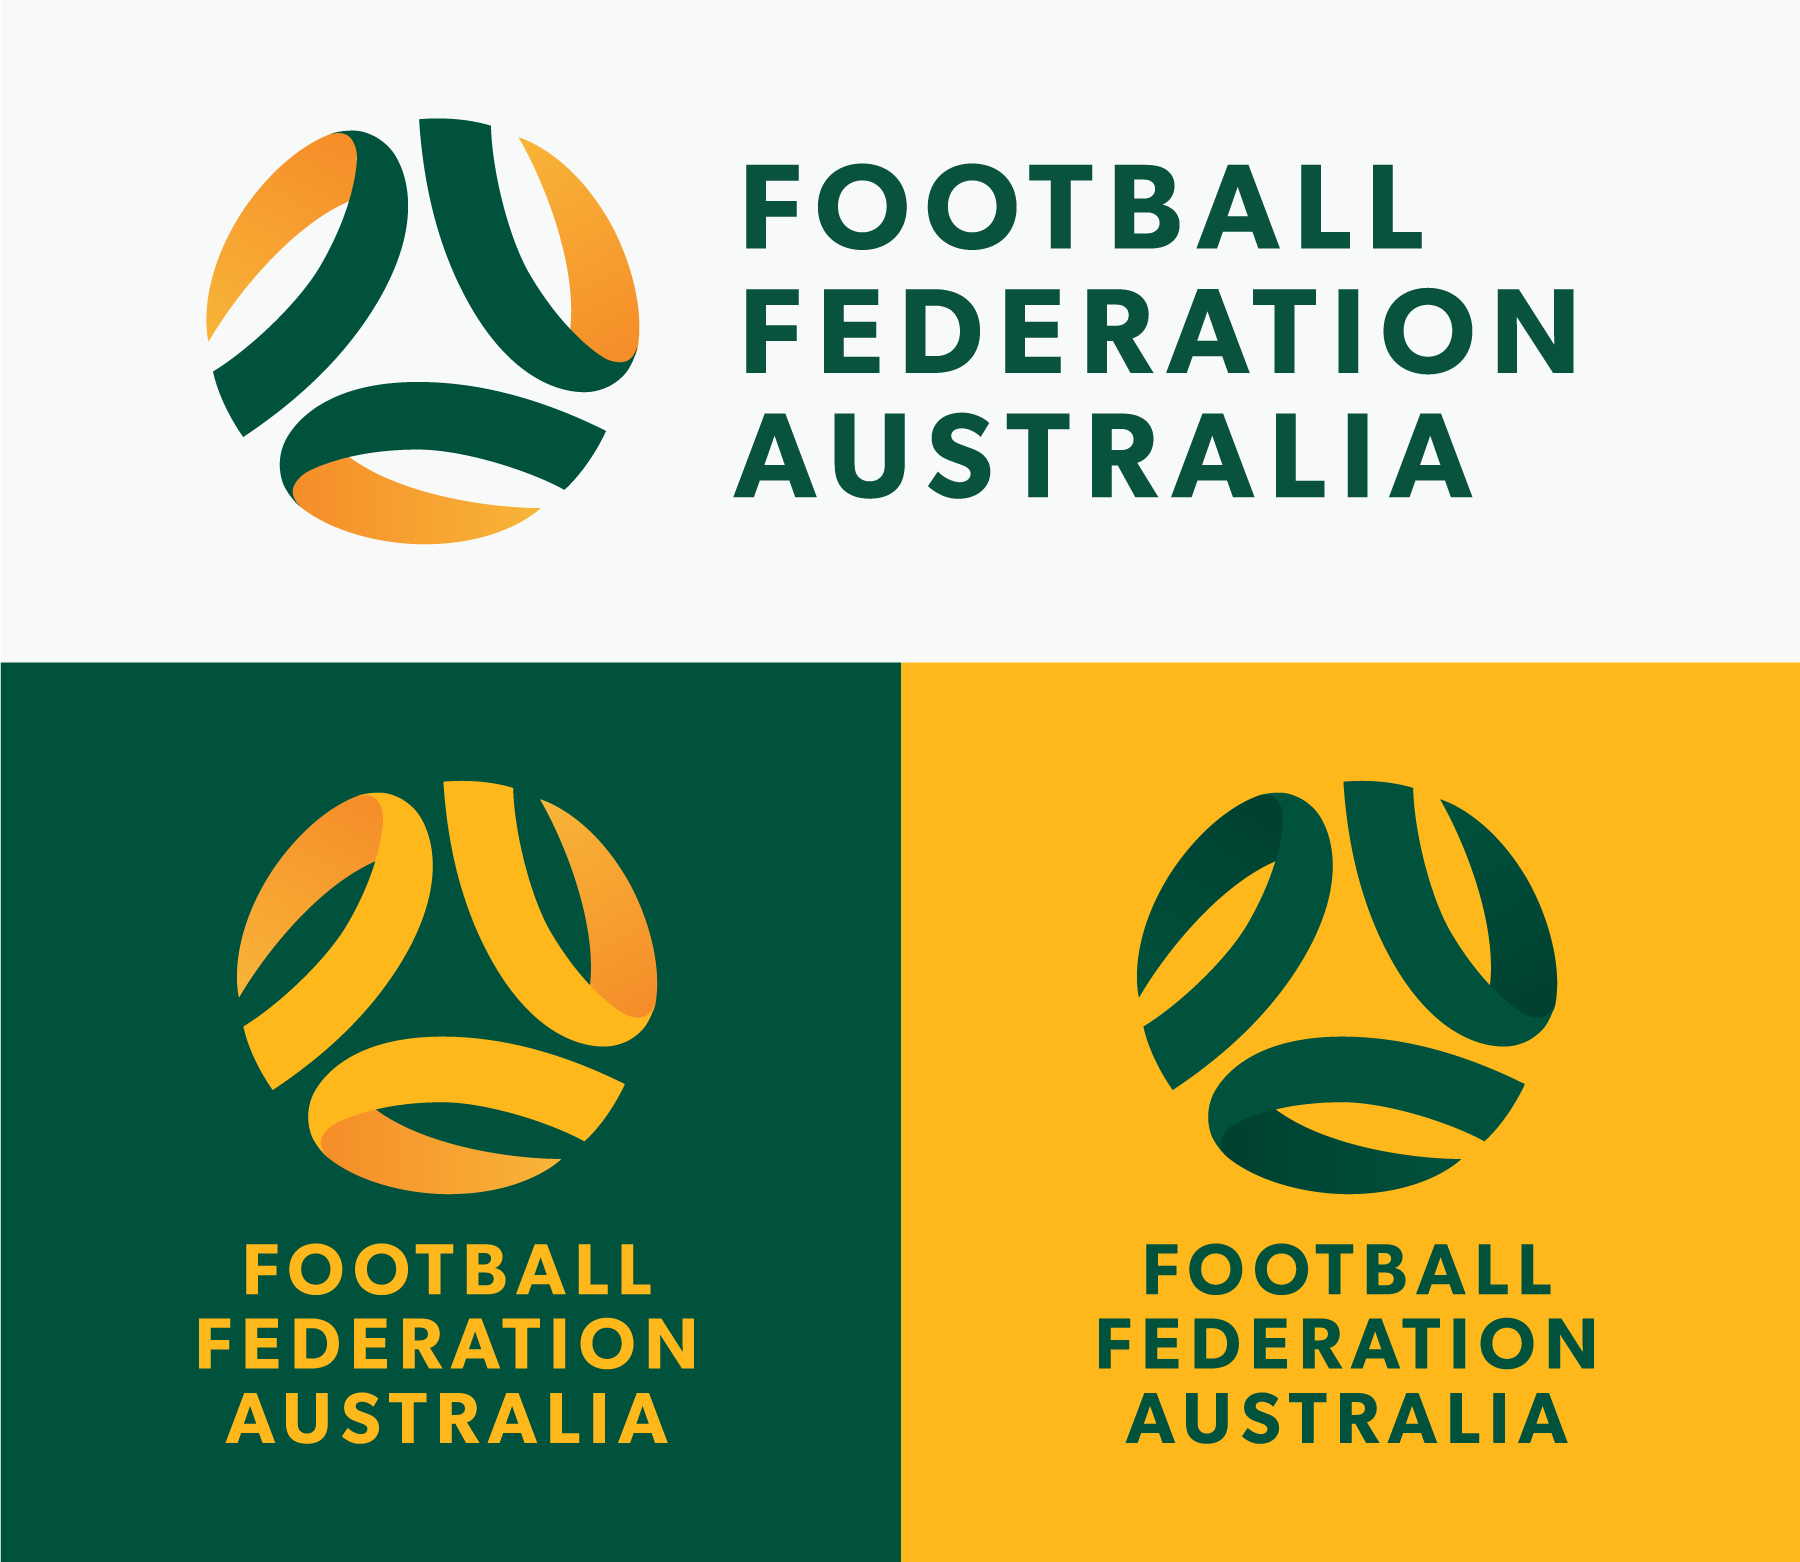 Alternate Football Federation Australia logos